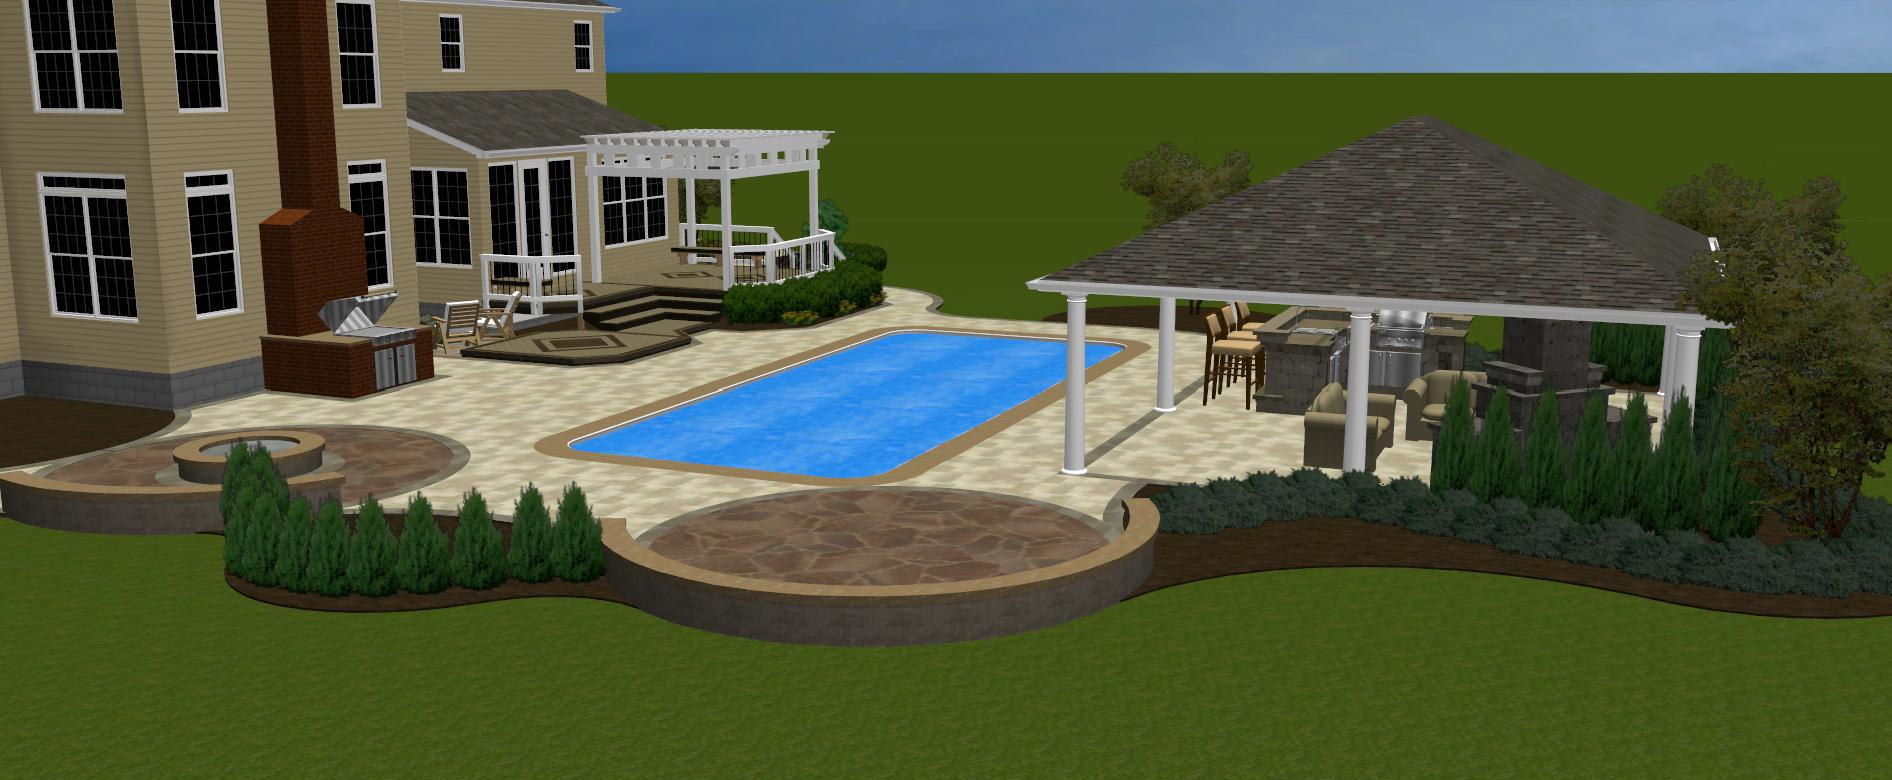 Columbus OH dream backyards - Columbus Decks, Porches and ... on Dream Backyard Ideas id=58247